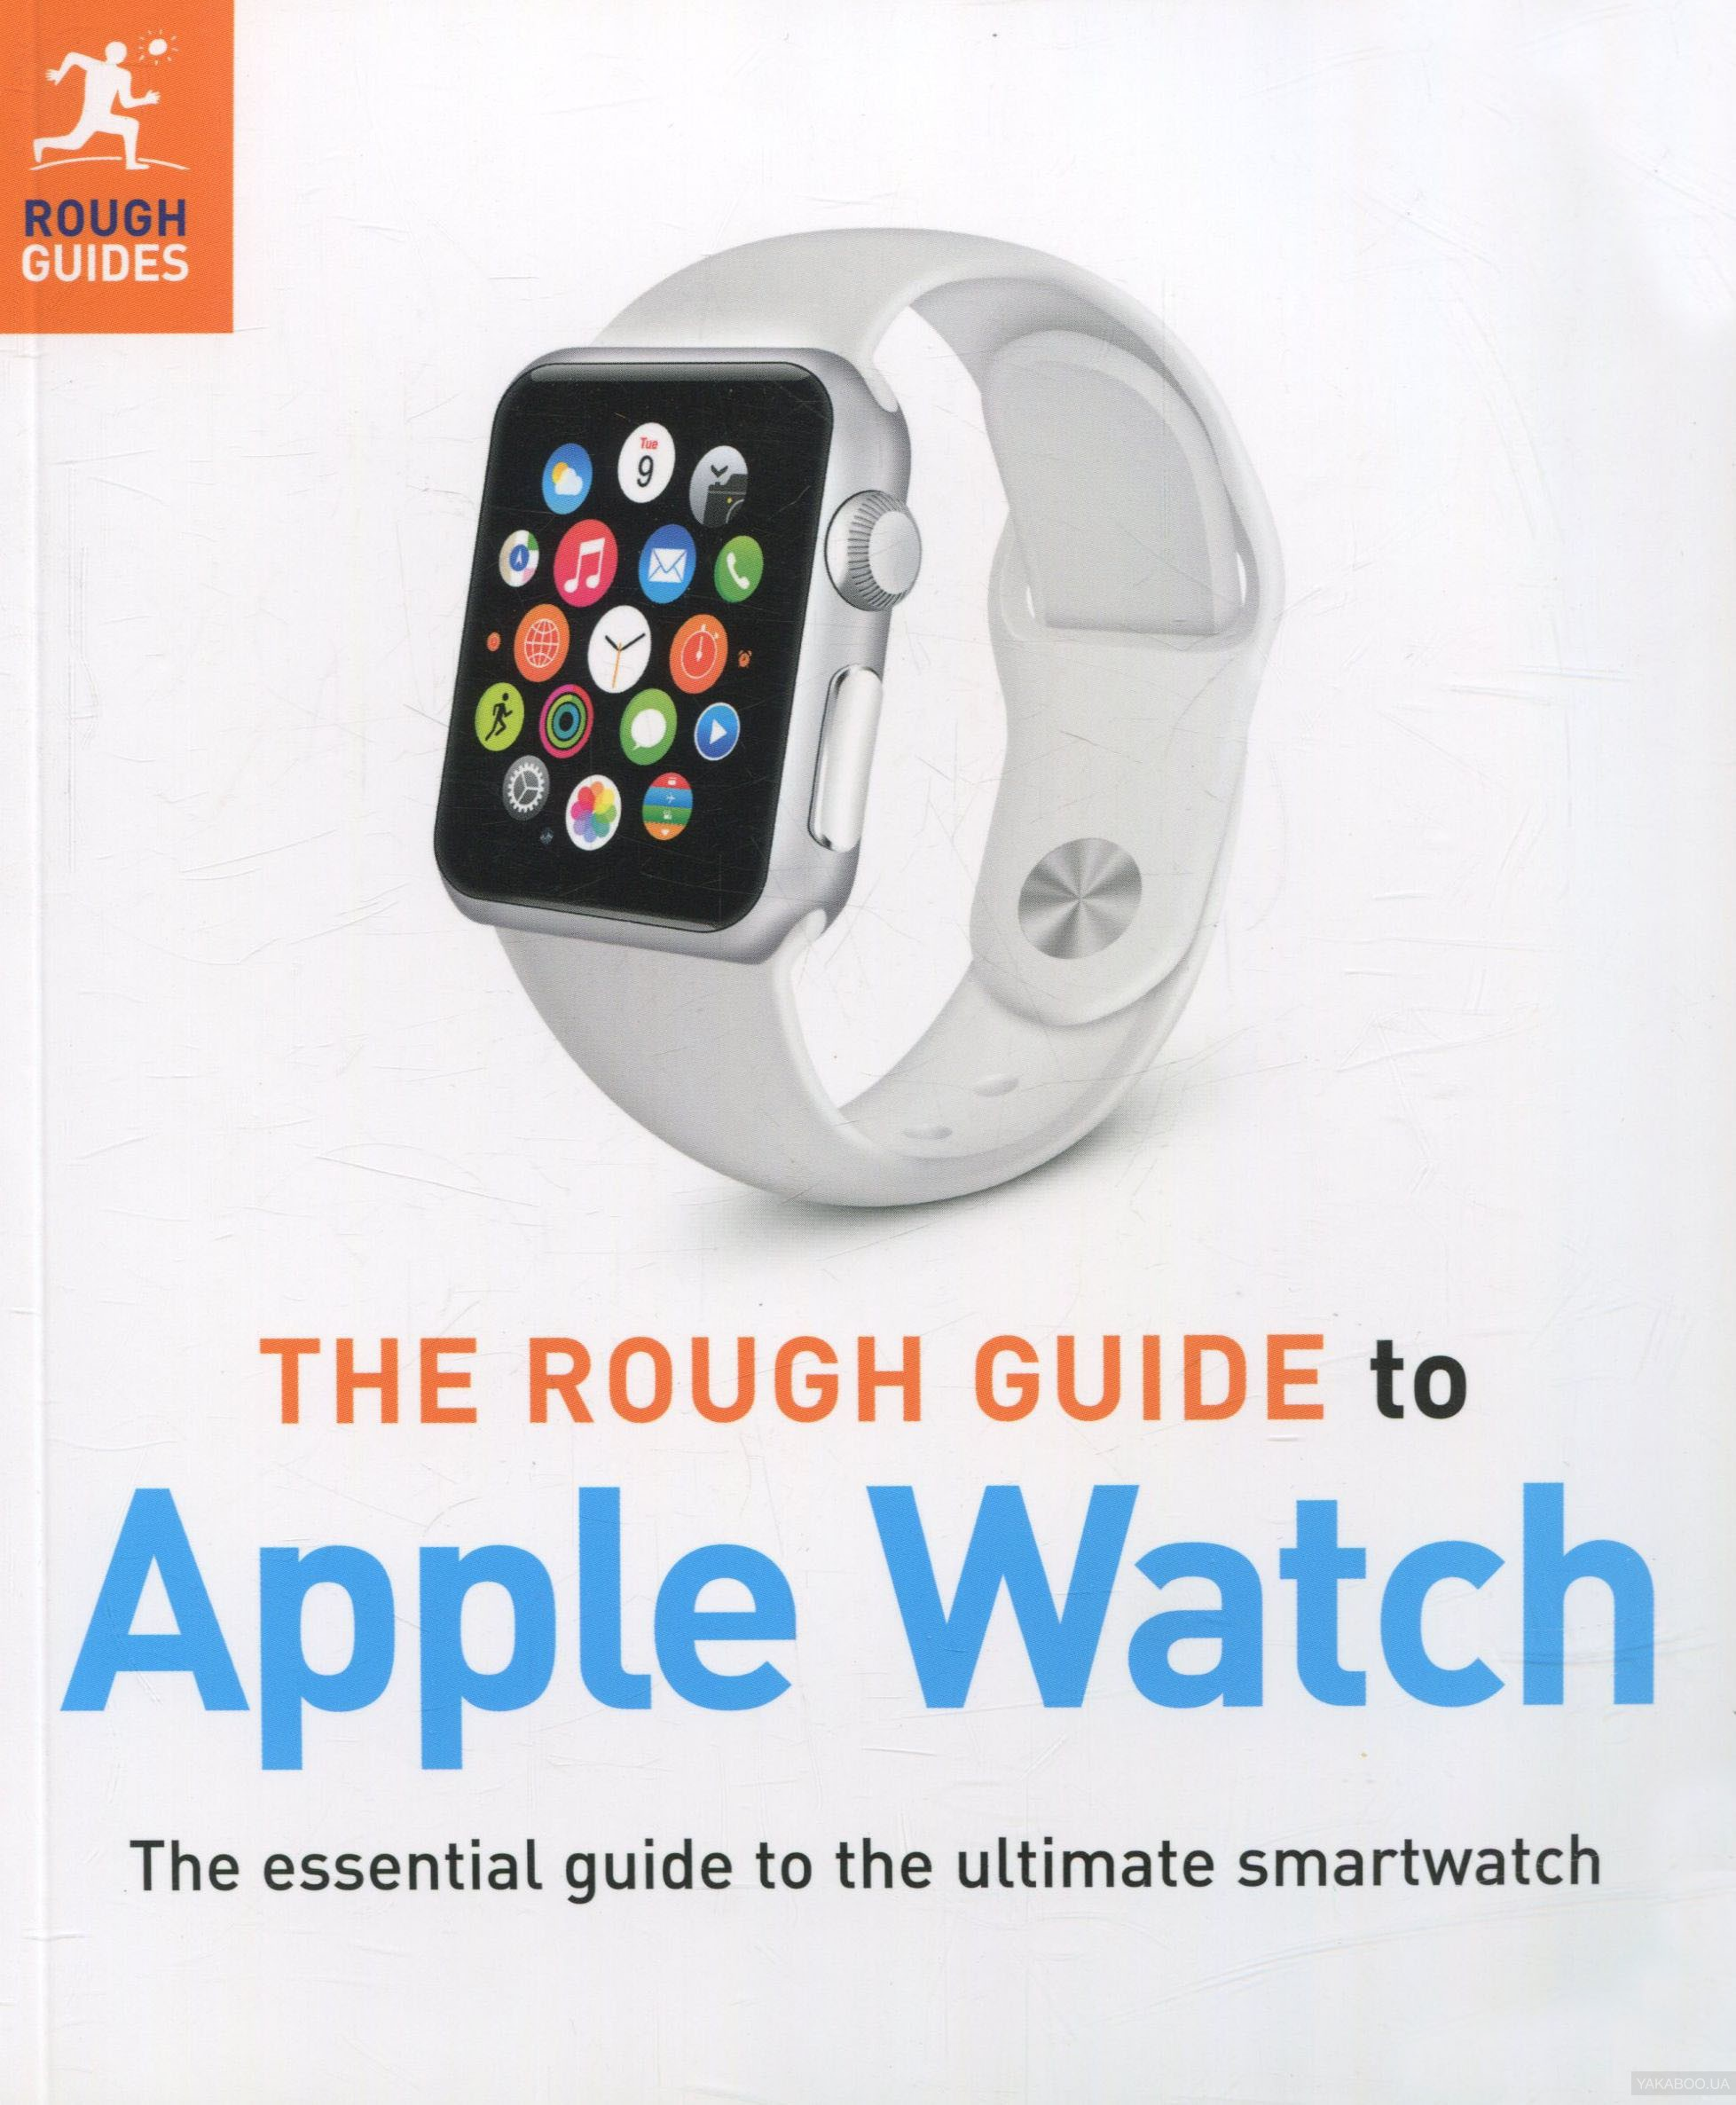 The Rough Guide to Apple Watch